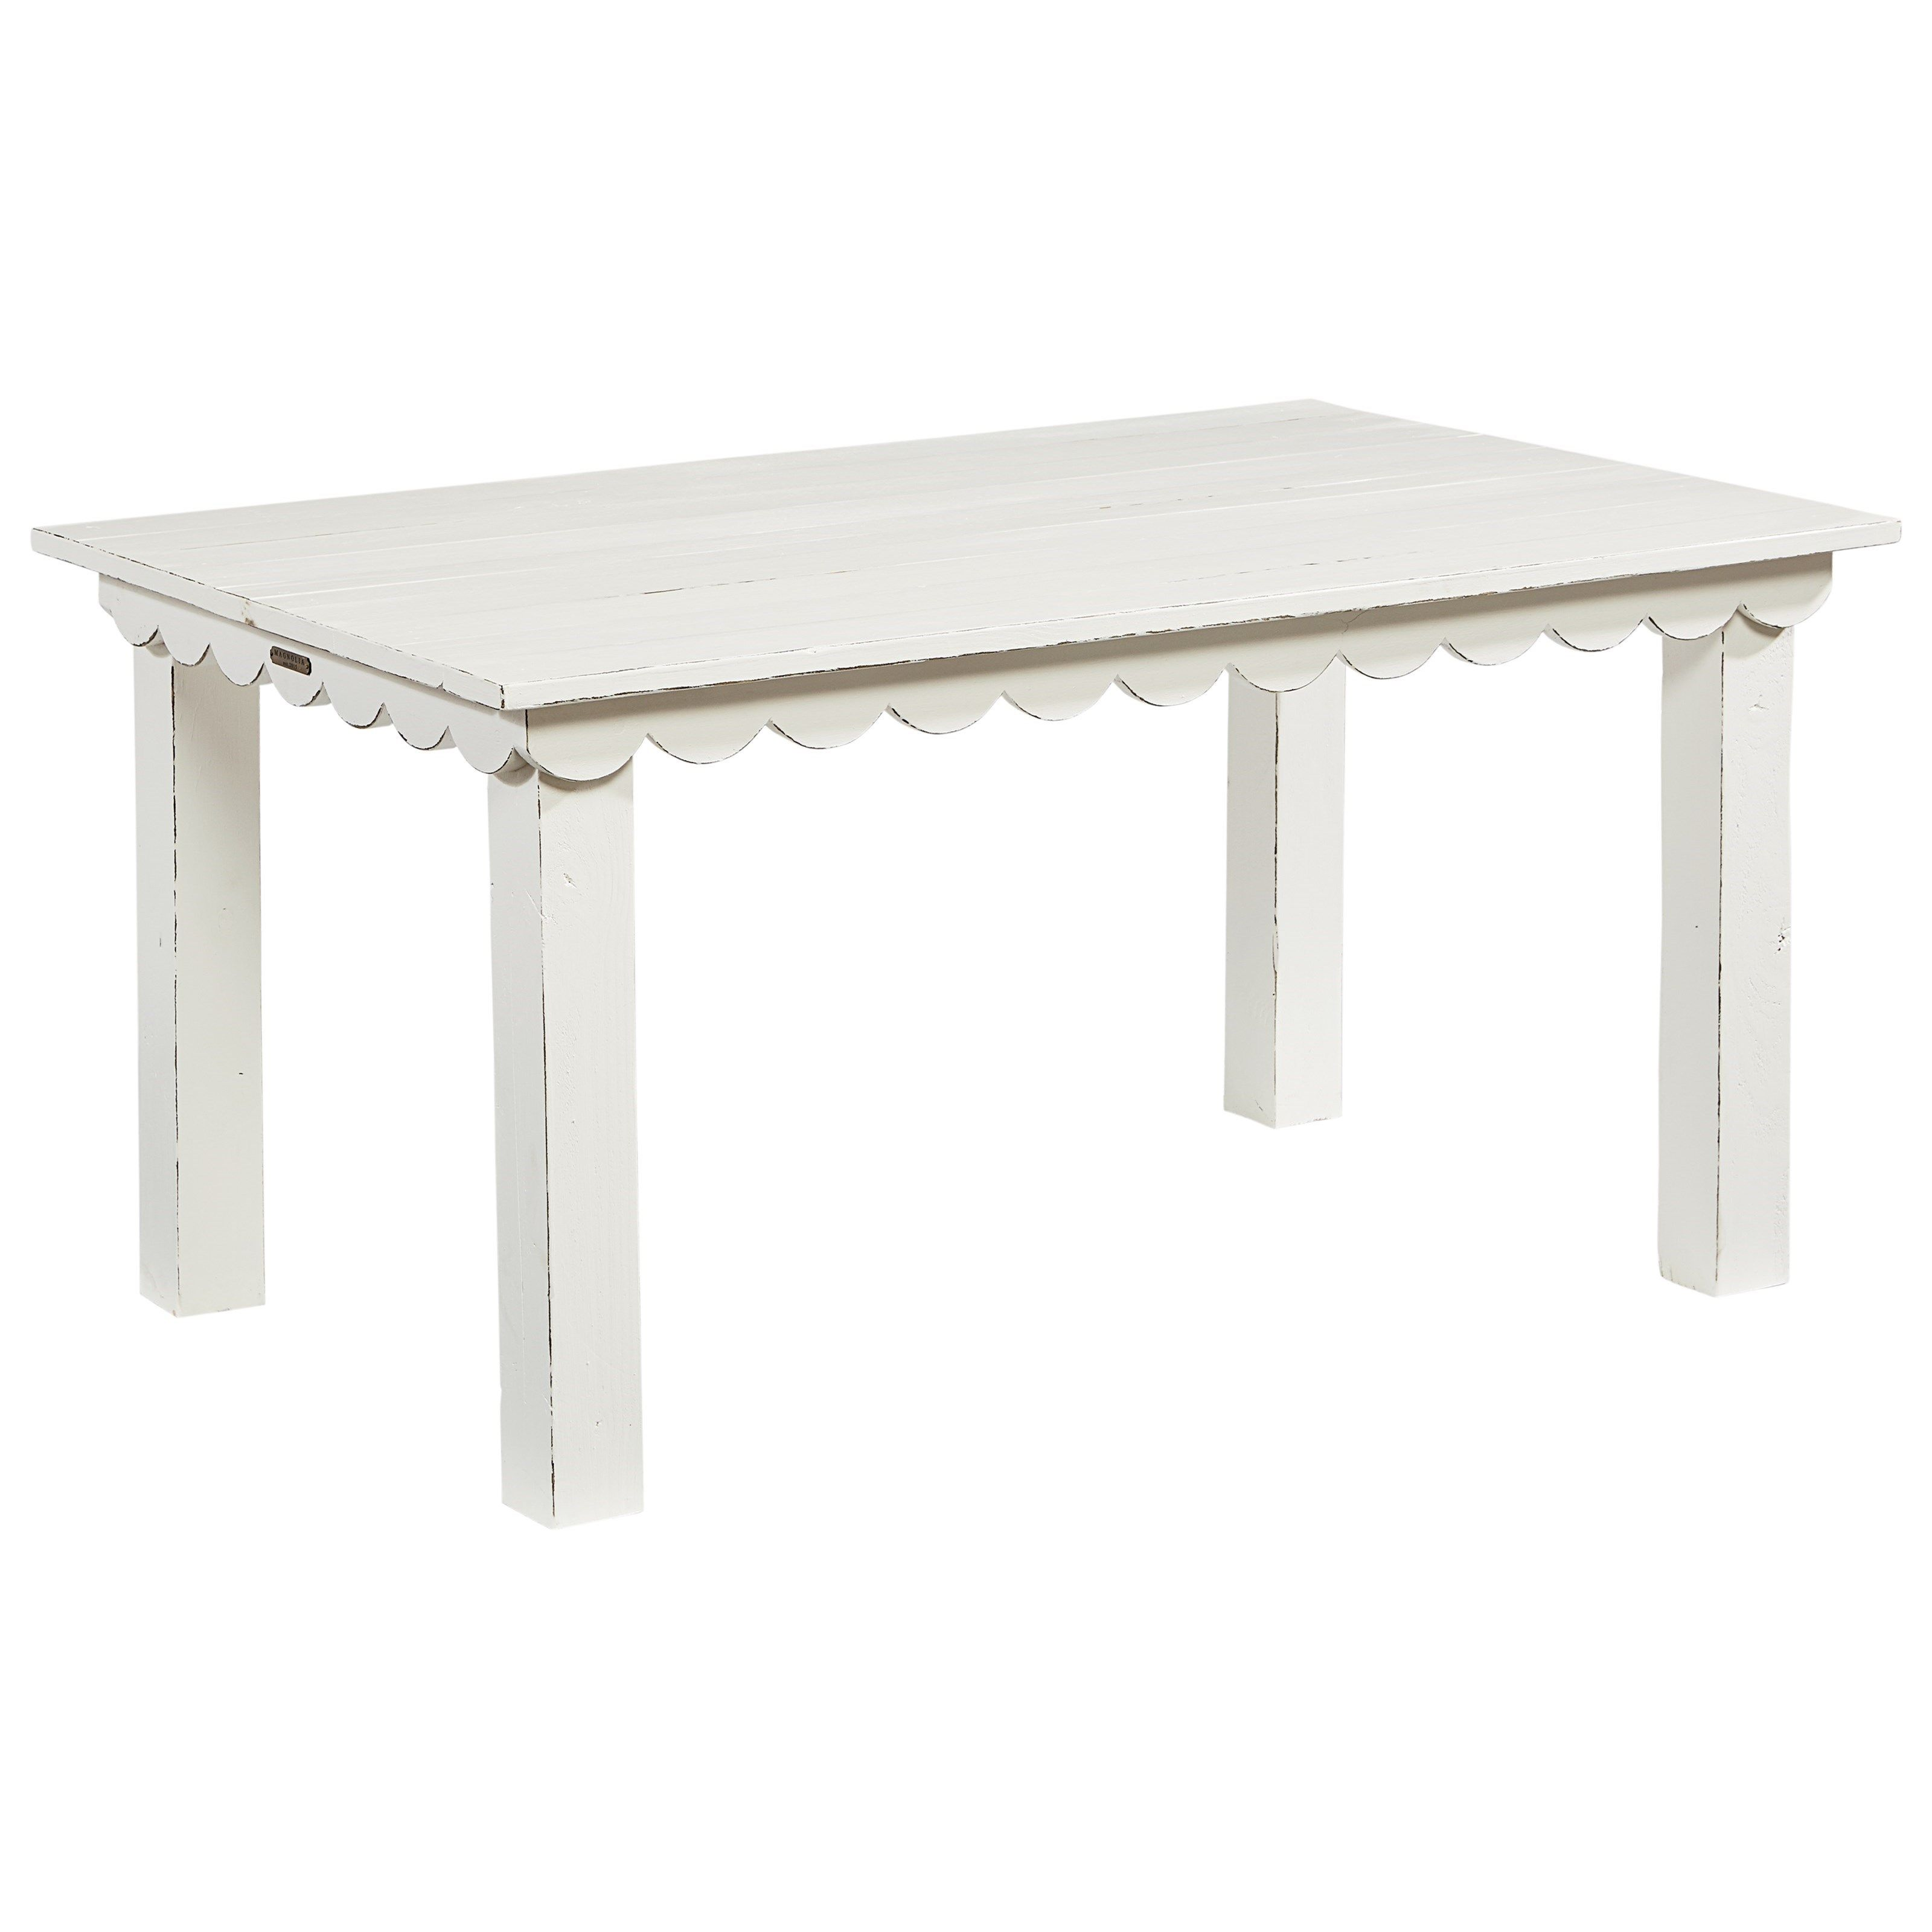 Farmhouse Kid's Table With Scalloped Trim And Square Legs